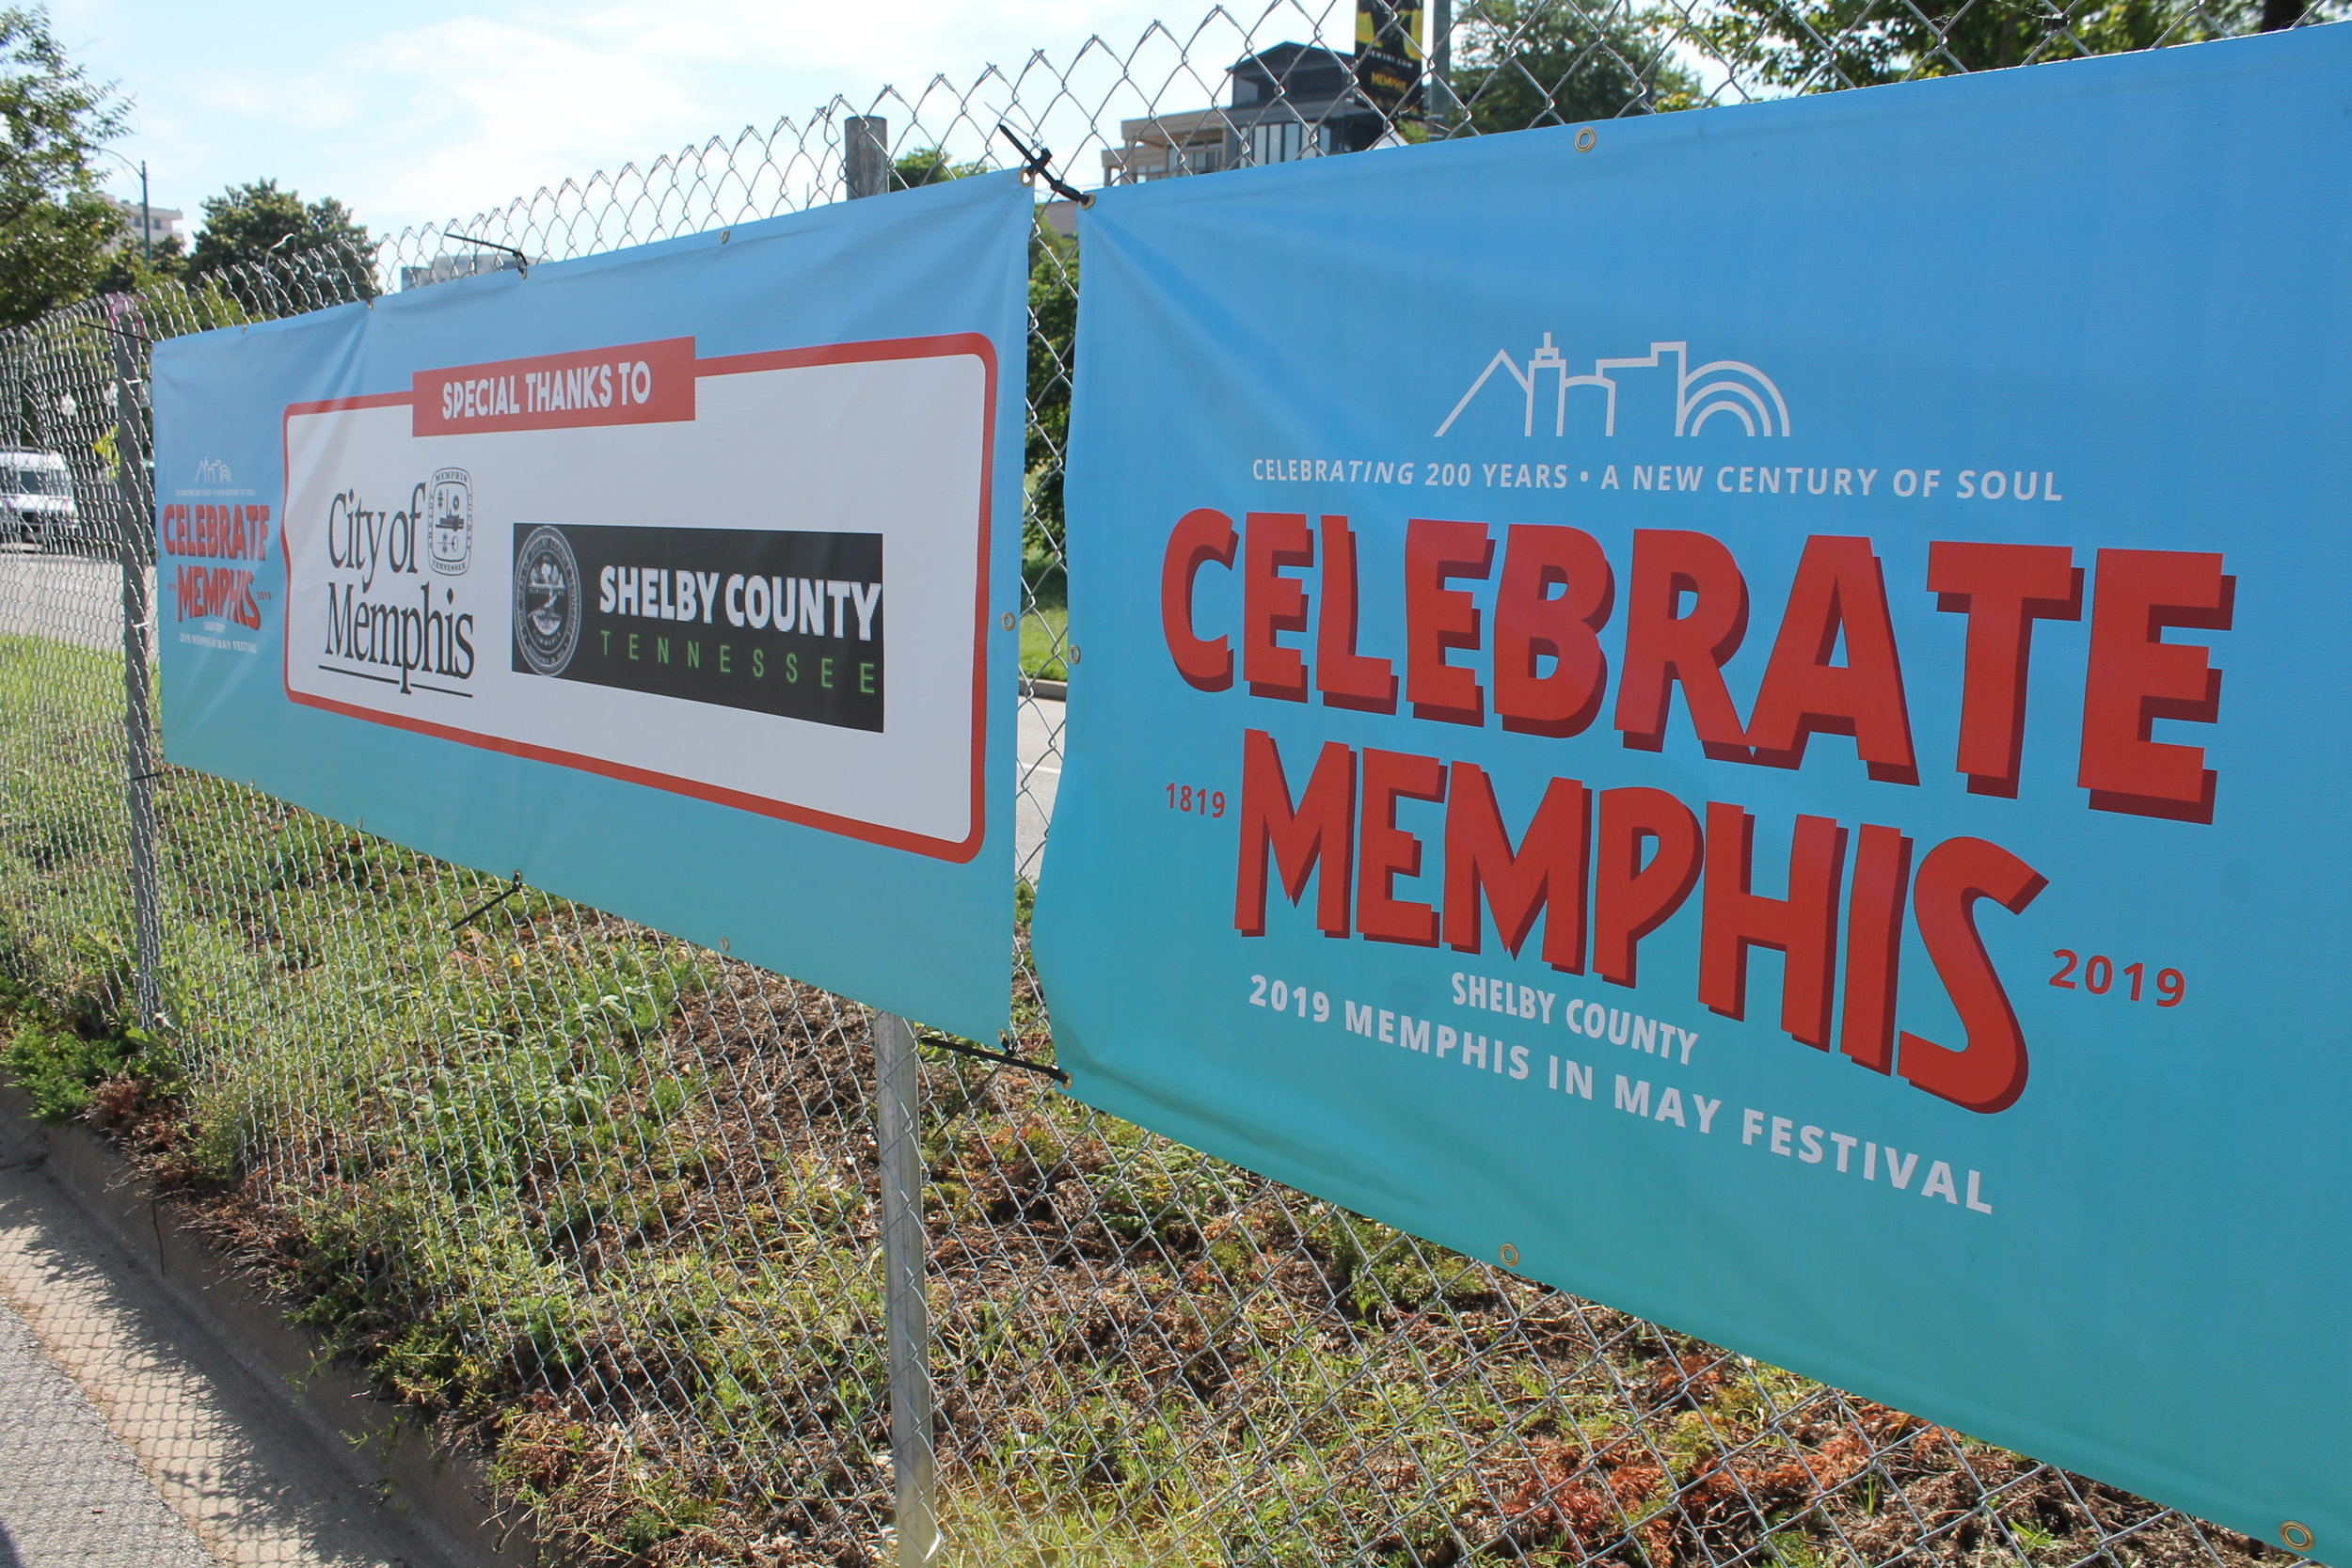 Memphis-In-May_Celebrate-Memphis_Fence-Mesh-Banners_Events_LSIGraphics_Memphis-TN ..